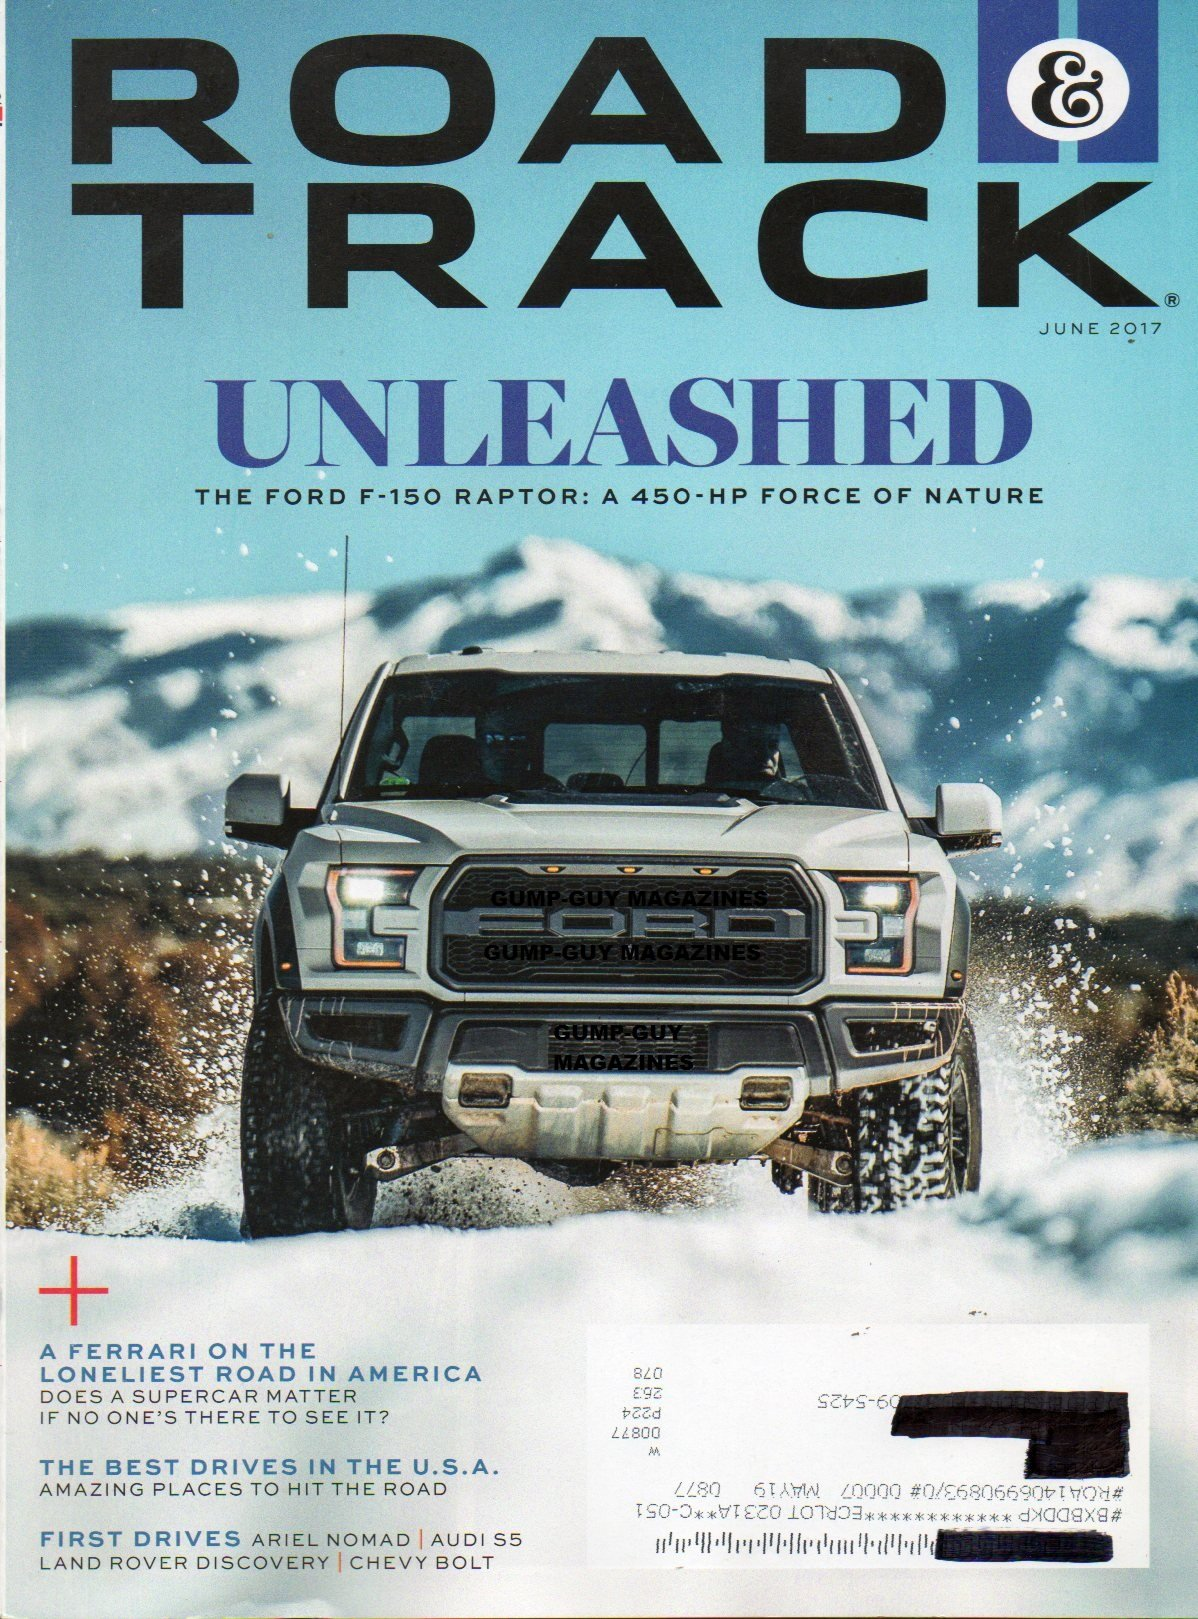 Read Online Road & Track 2017 Magazine FIRST DRIVES: ARIEL NOMAD, AUDI S5, LAND ROVER DISCOVERY & CHEVY BOLT Wunderkind Josef Newgarden May Be The New Face Of IndyCar BOB LUTZ ON GOVERNMENT REGULATION ebook